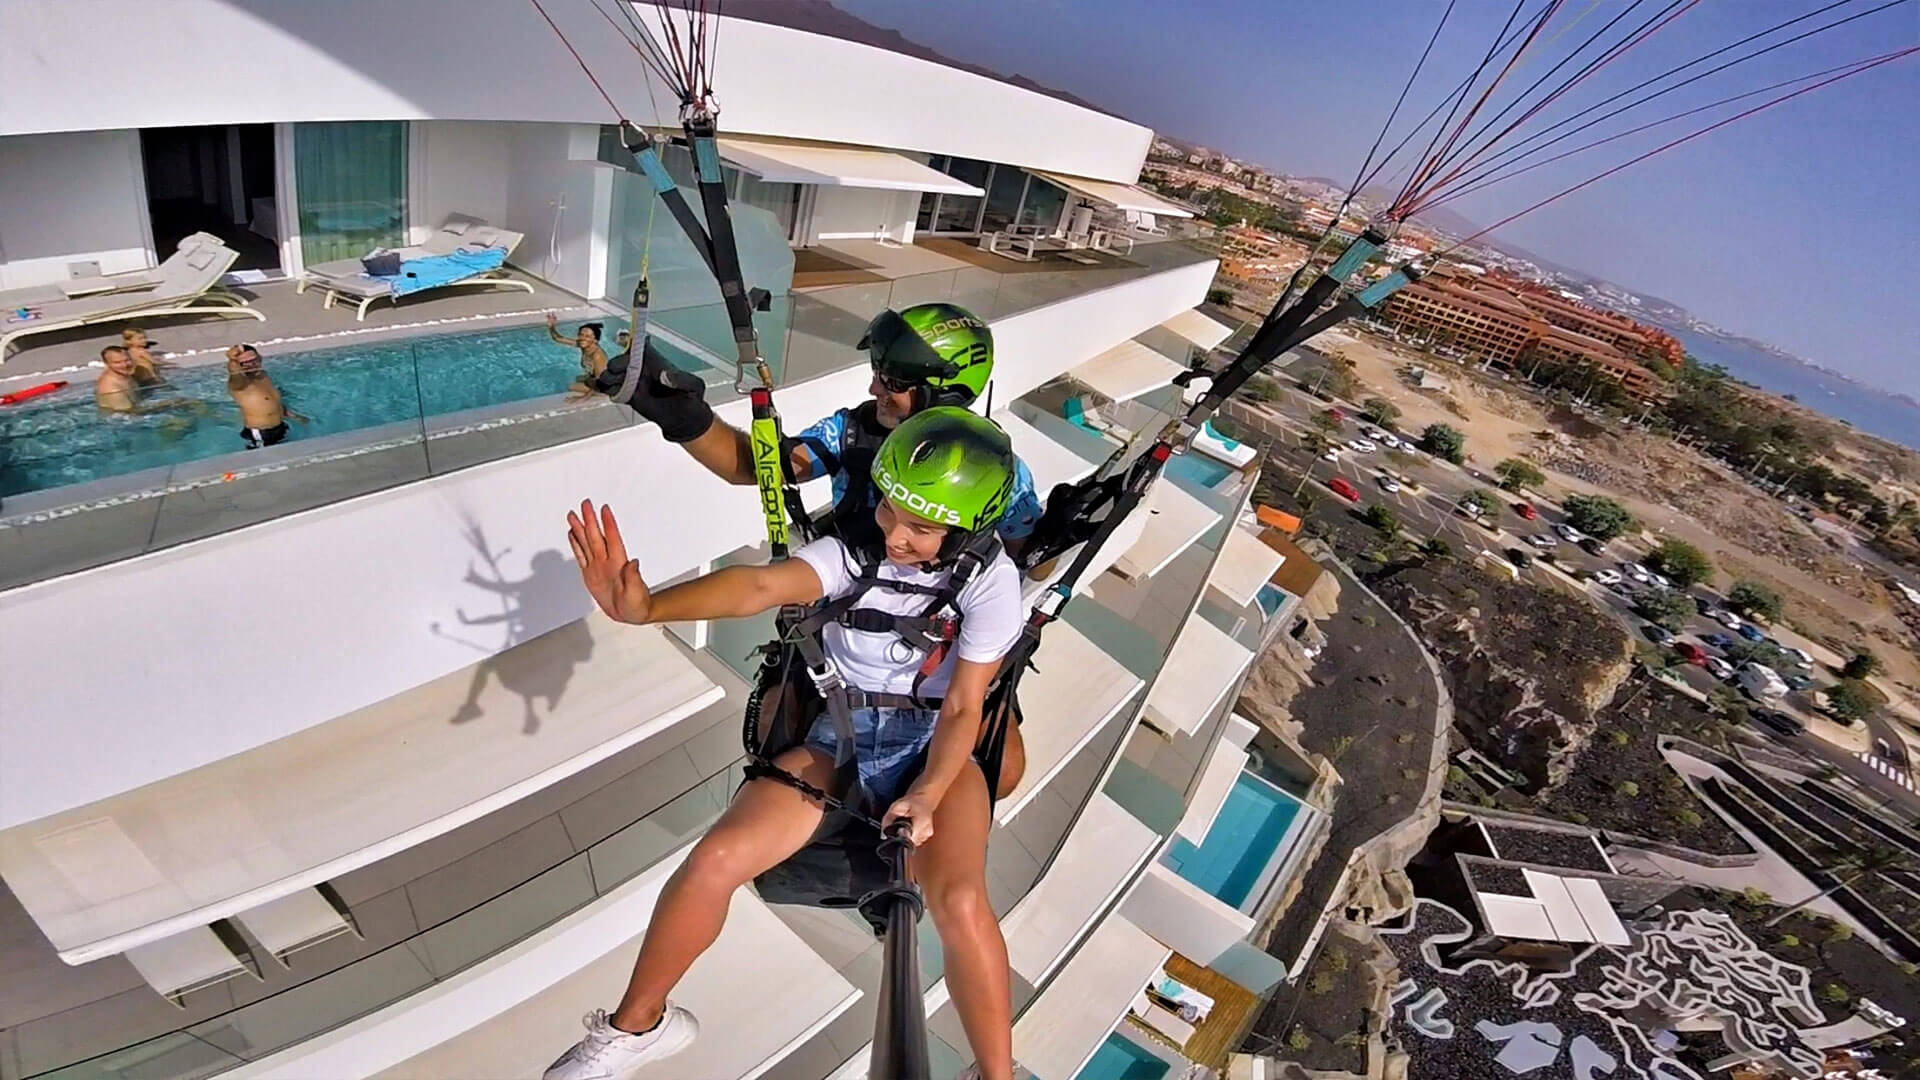 pilot and child in tandem paragliding flight passing hotel with people in swimming pool